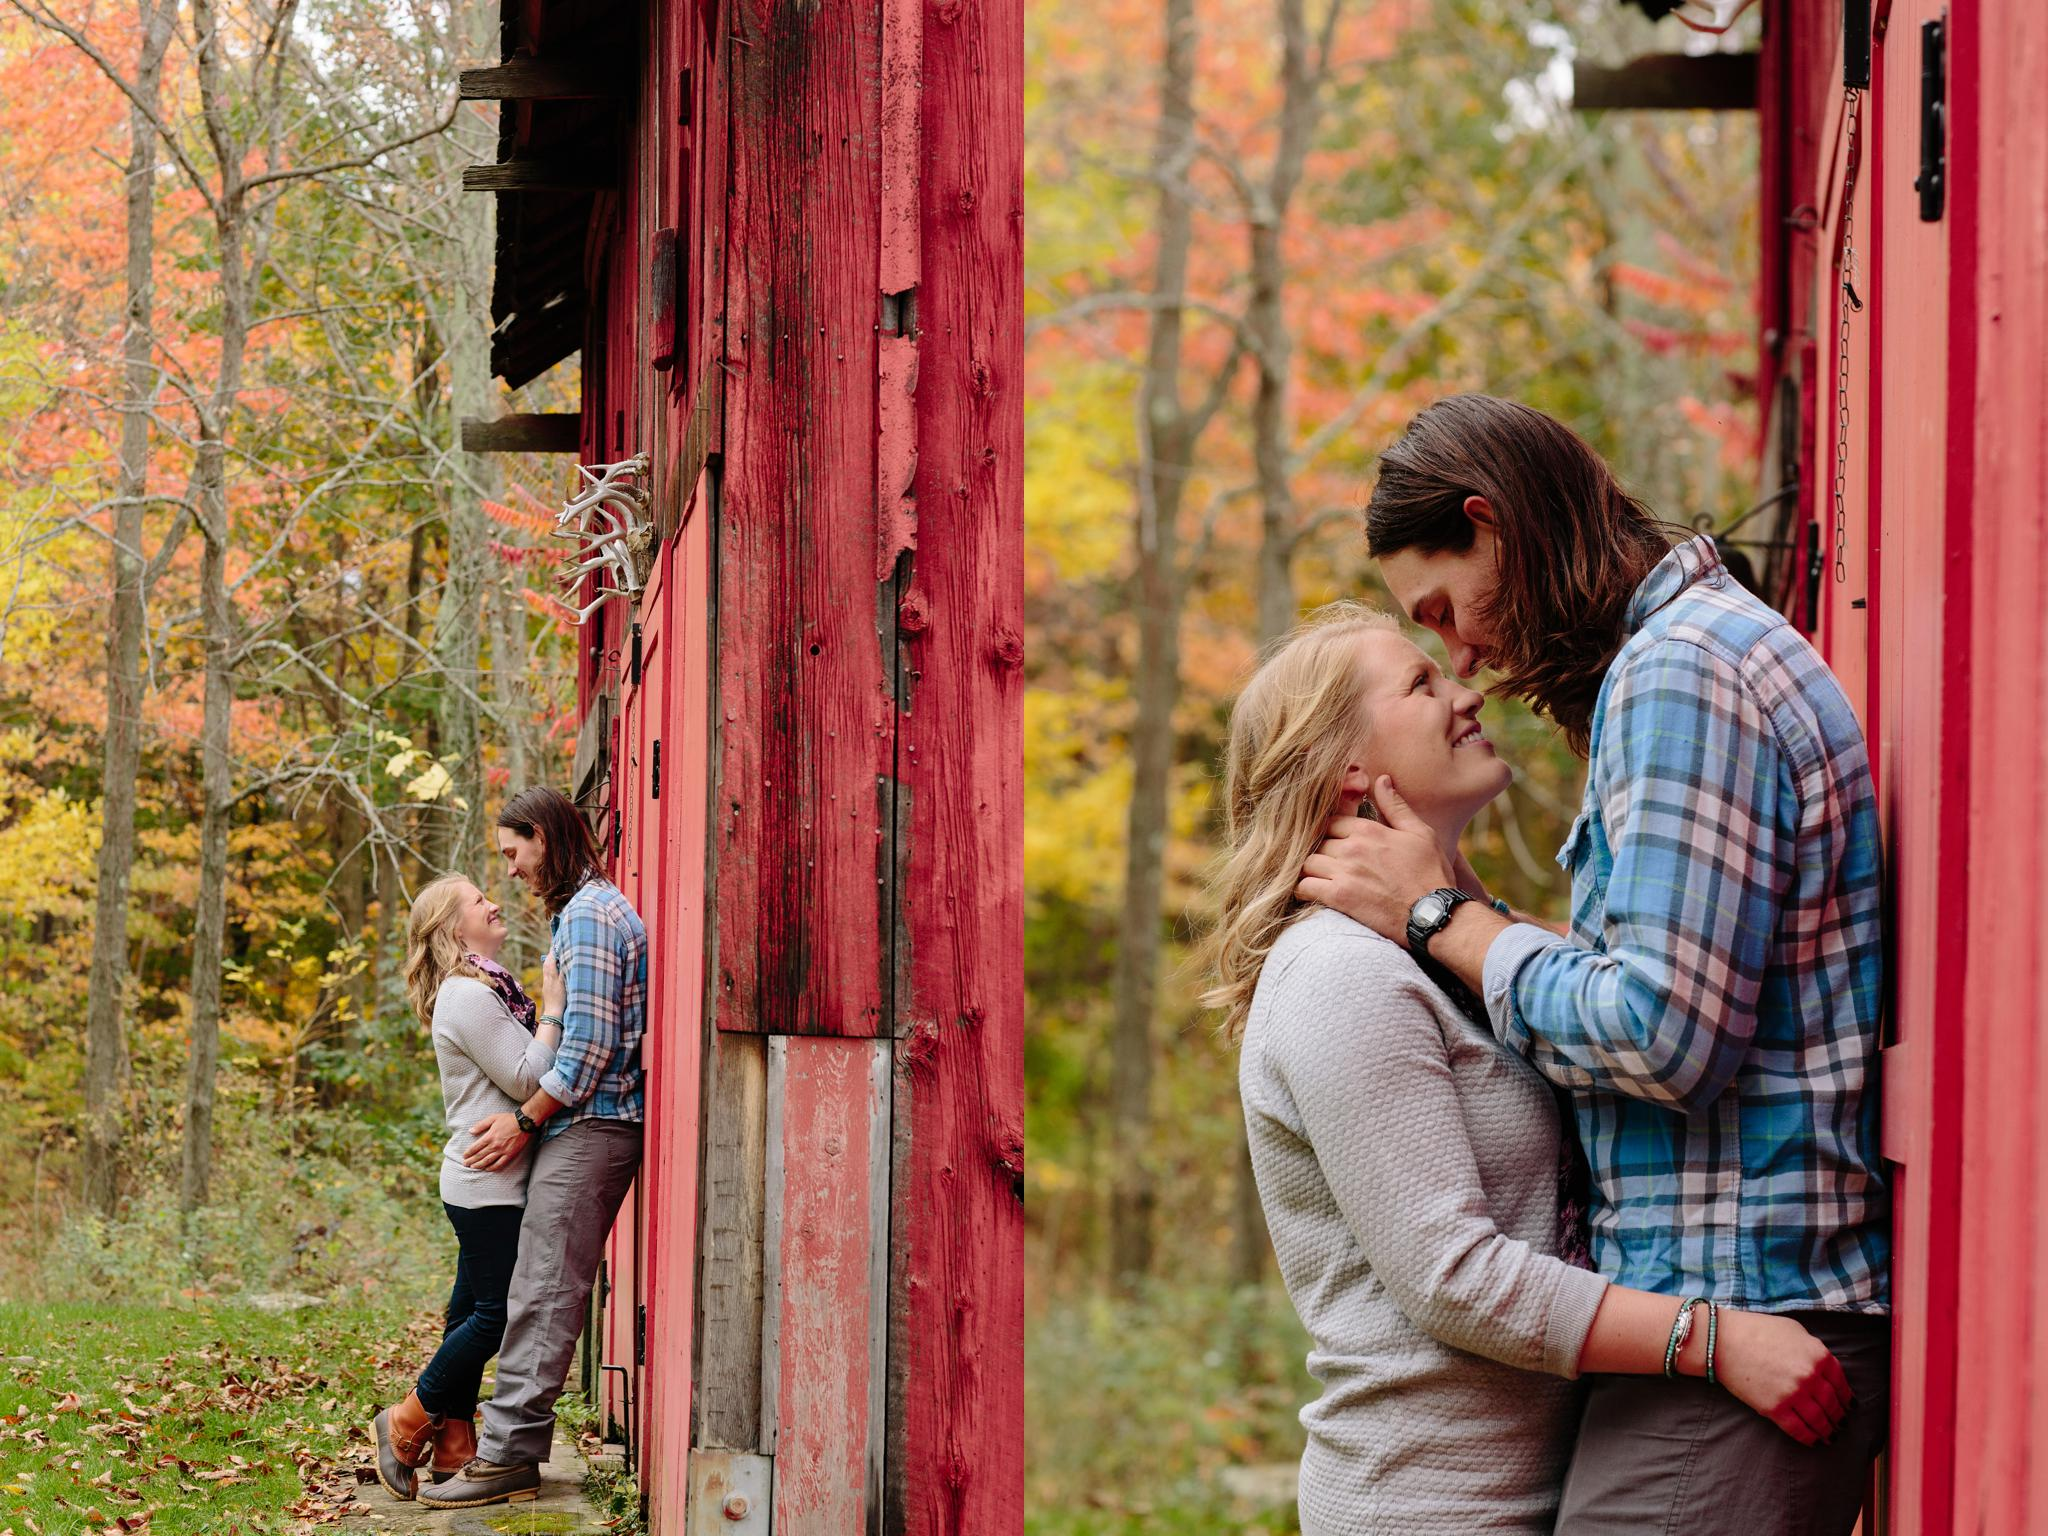 tukhannock_pa_engagement_photographer_8012.jpg